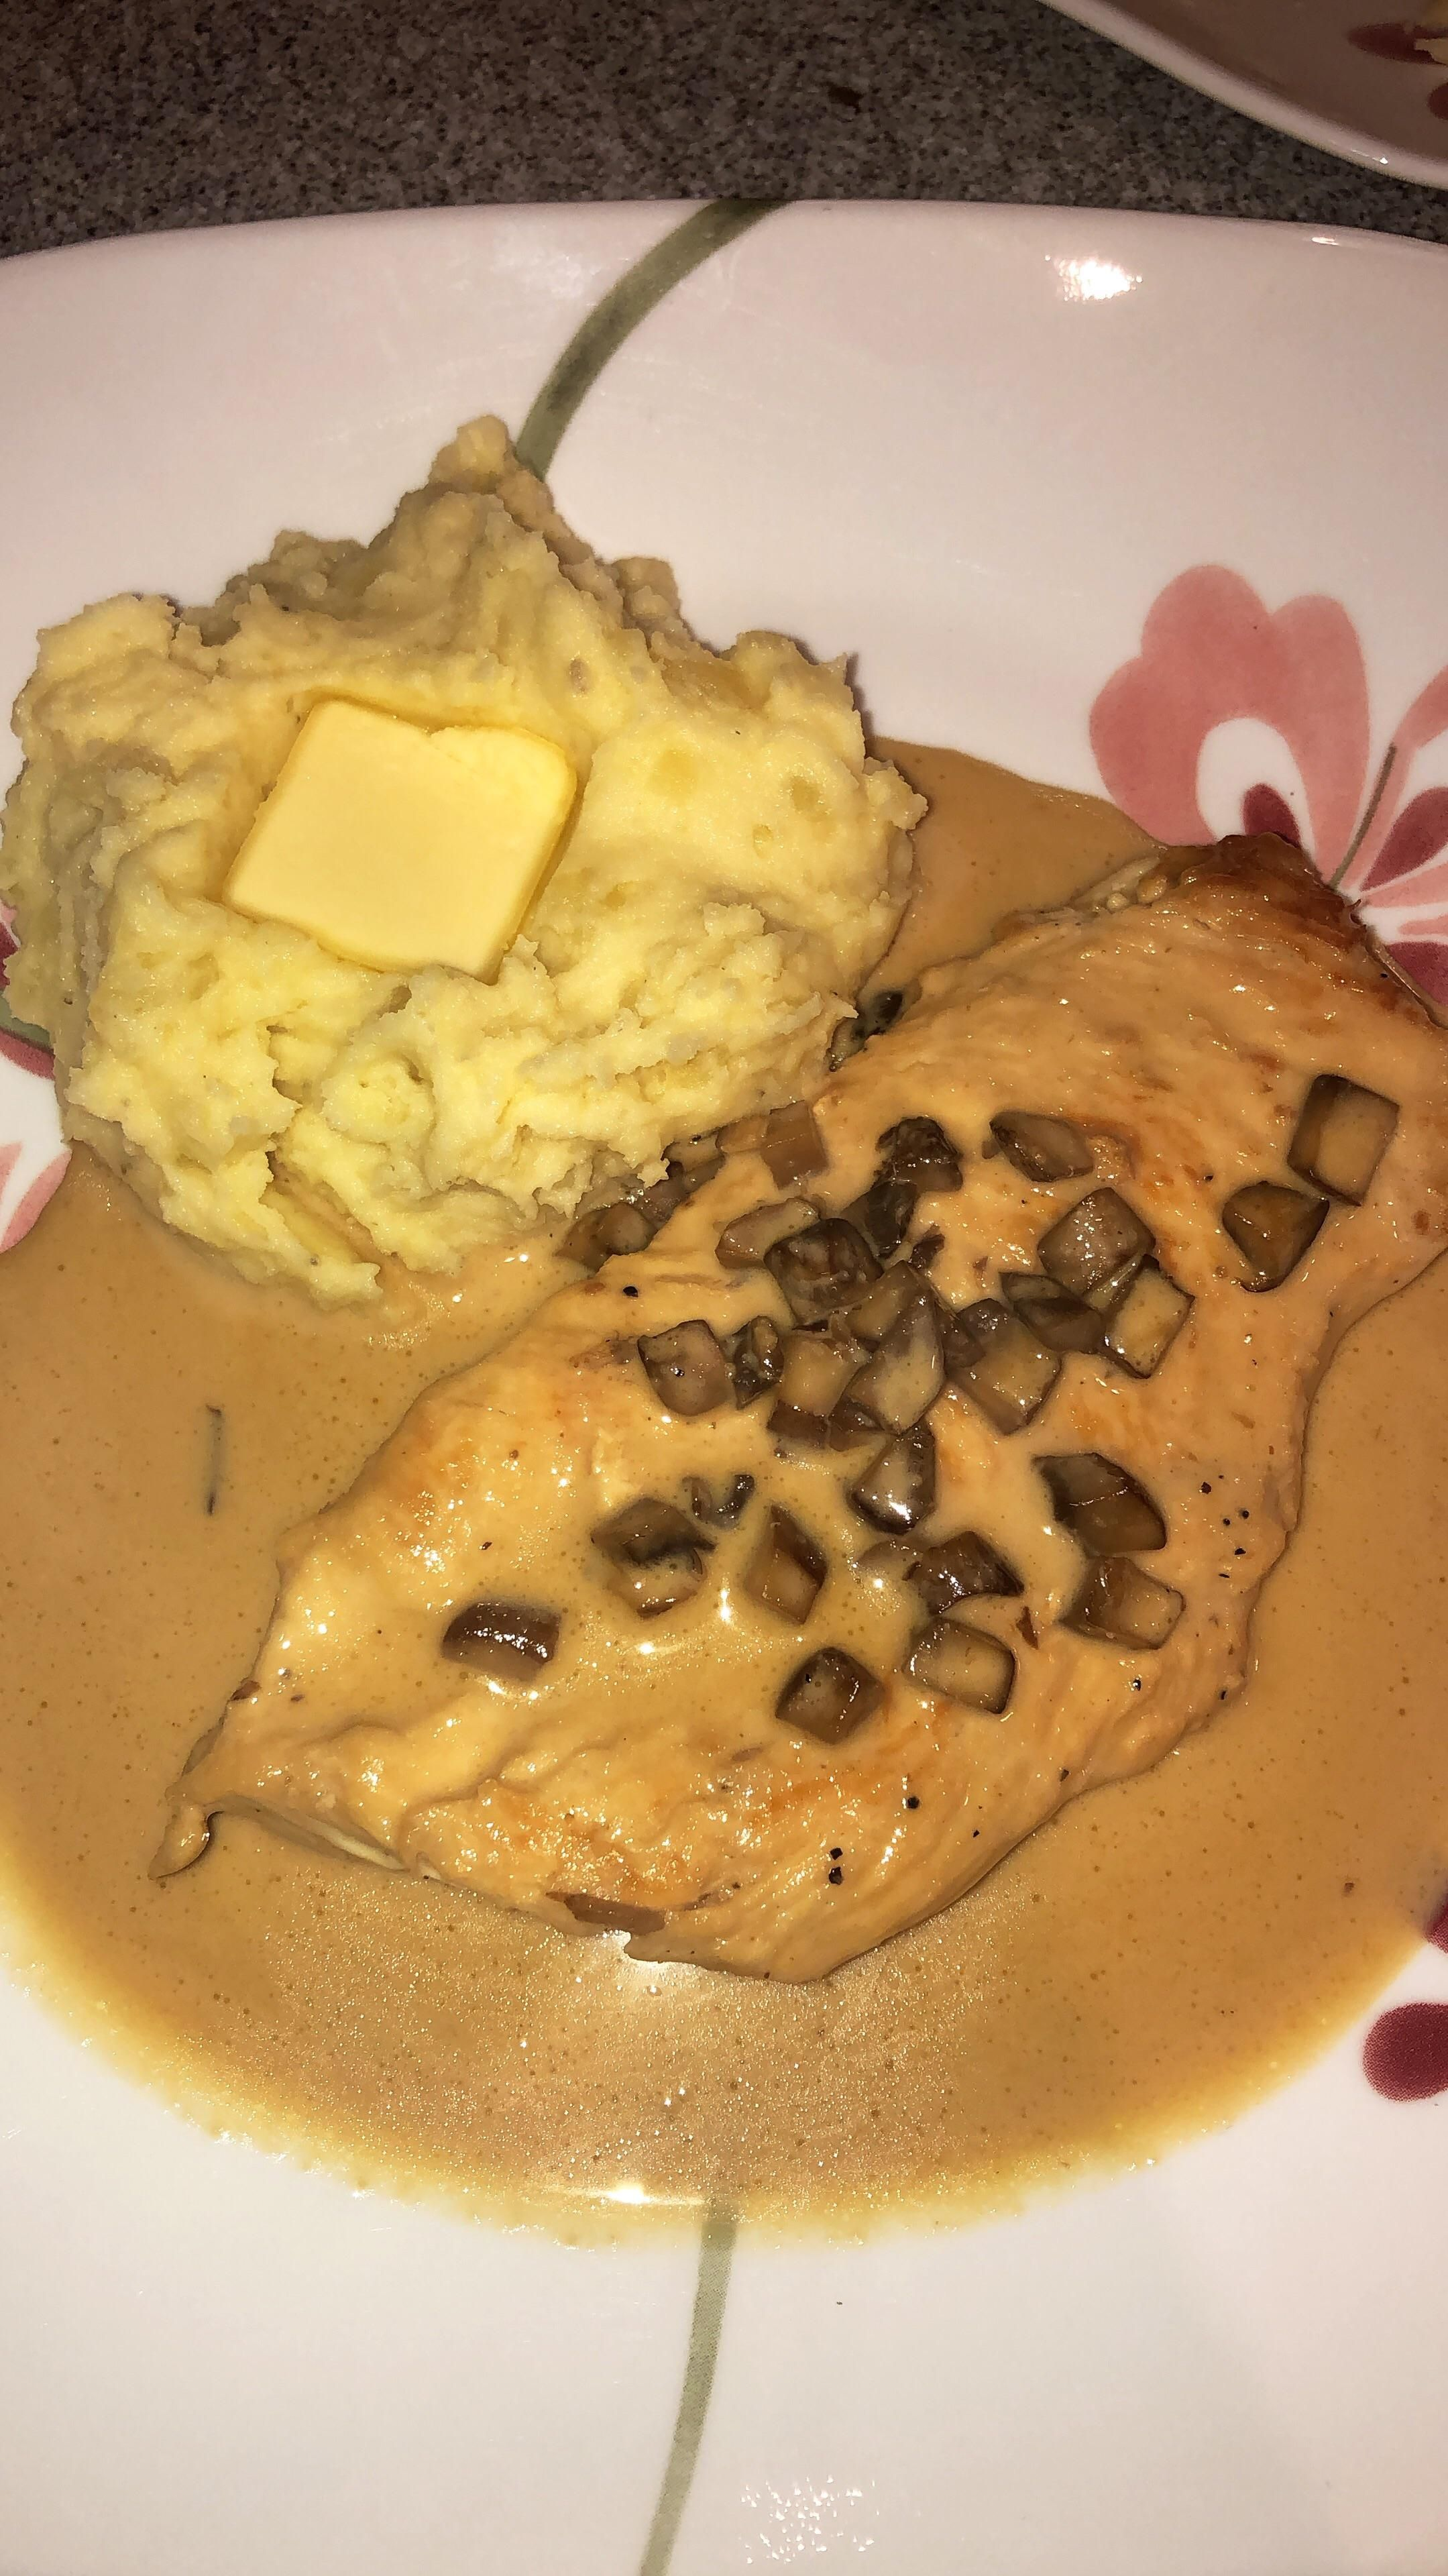 Homemade Creamy Chicken Marsala With Mashed Potatoes Food Food Network Recipes Creamy Chicken